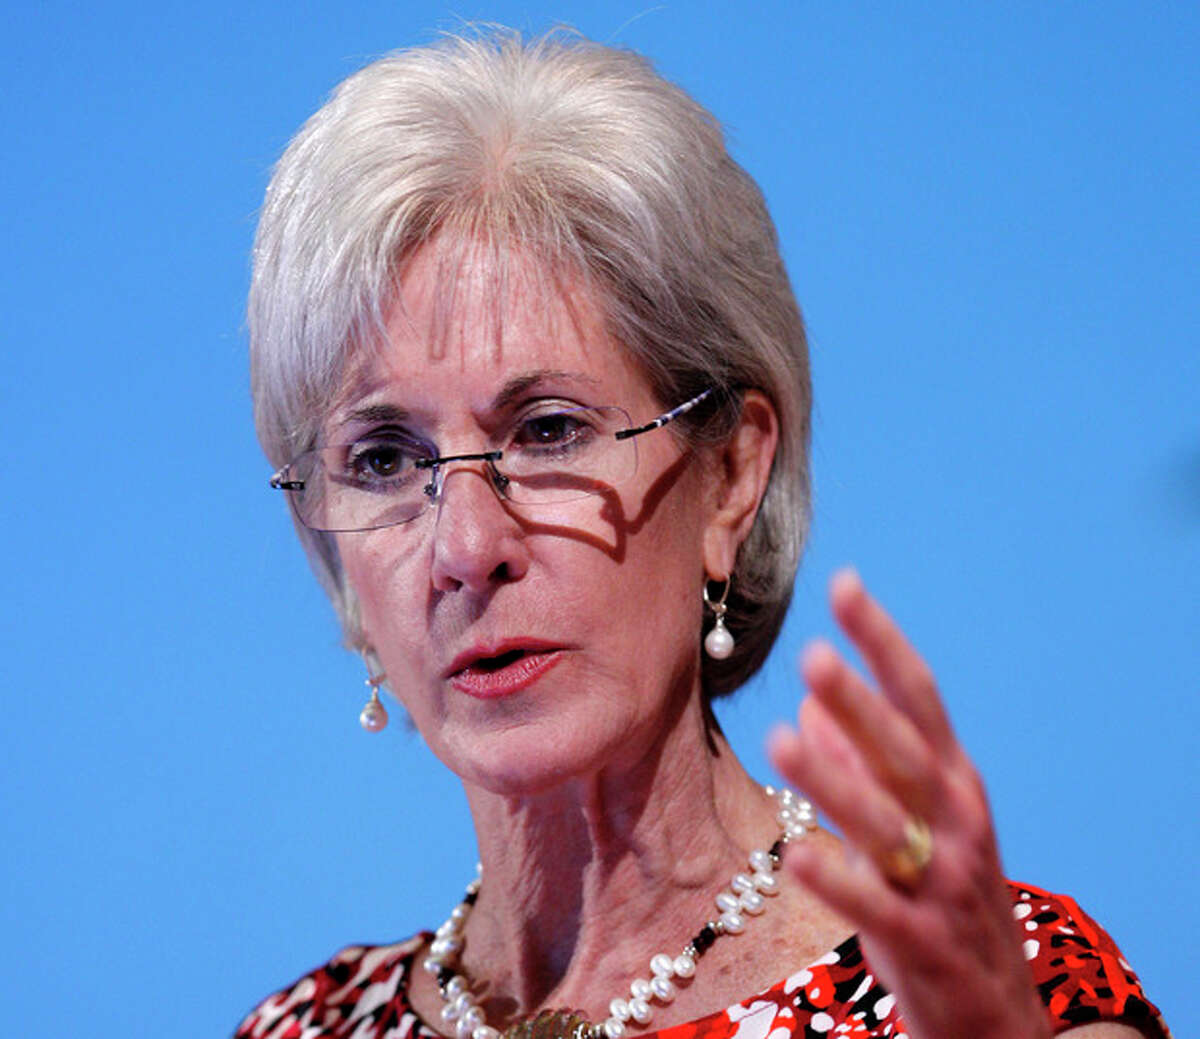 FILE - In this May 15, 2012 file photo, Health and Human Services Secretary Kathleen Sebelius speaks in Bethesda, Md. Medicare, overseen by Sebelius' department, is coming under scrutiny in the meningitis outbreak that has rekindled doubts about the safety of the nation?'s drug supply. (AP Photo/Jose Luis Magana, File)